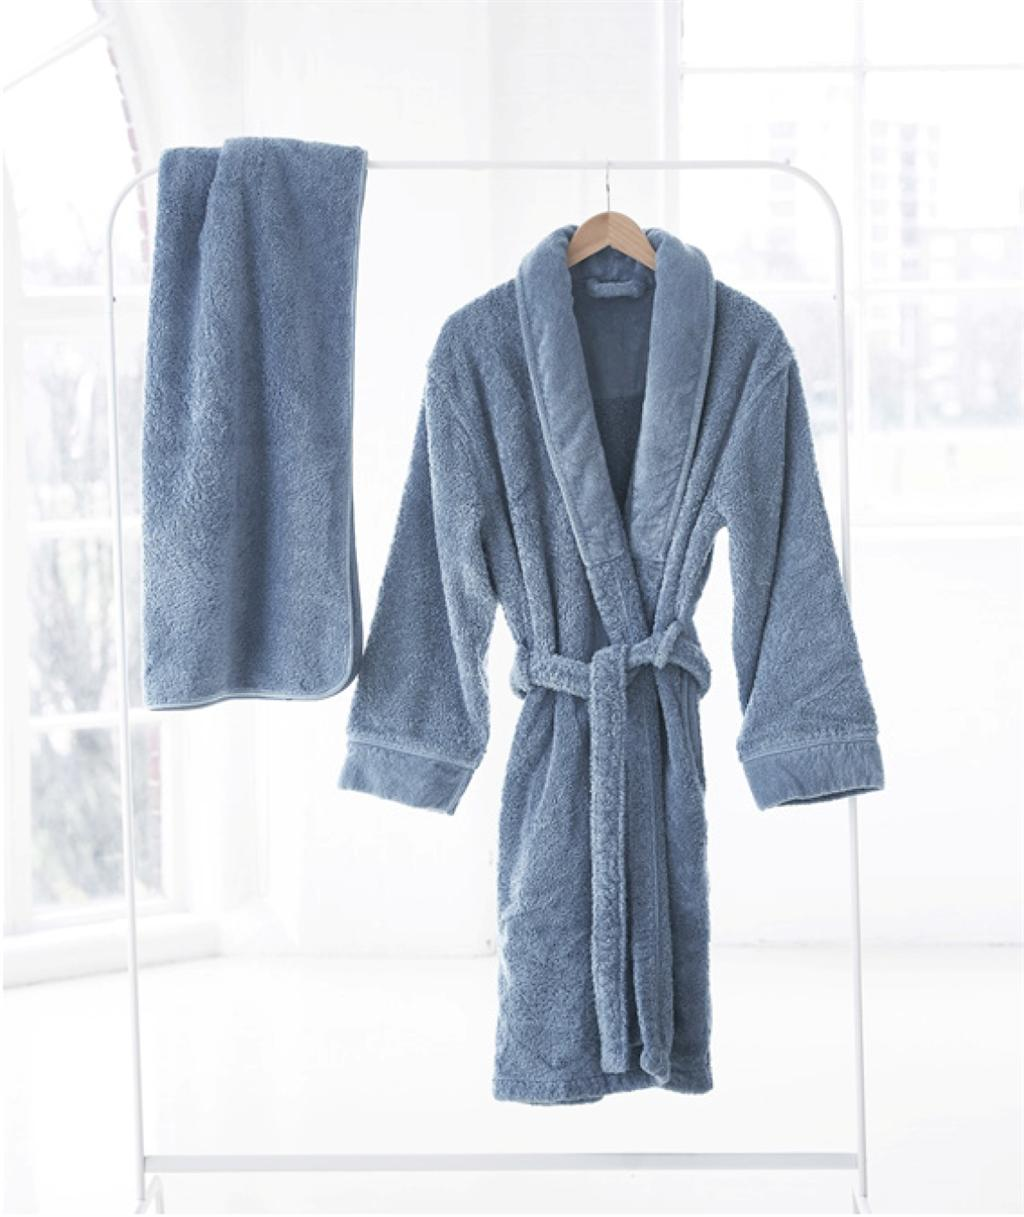 NEW TOWELS & ROBES